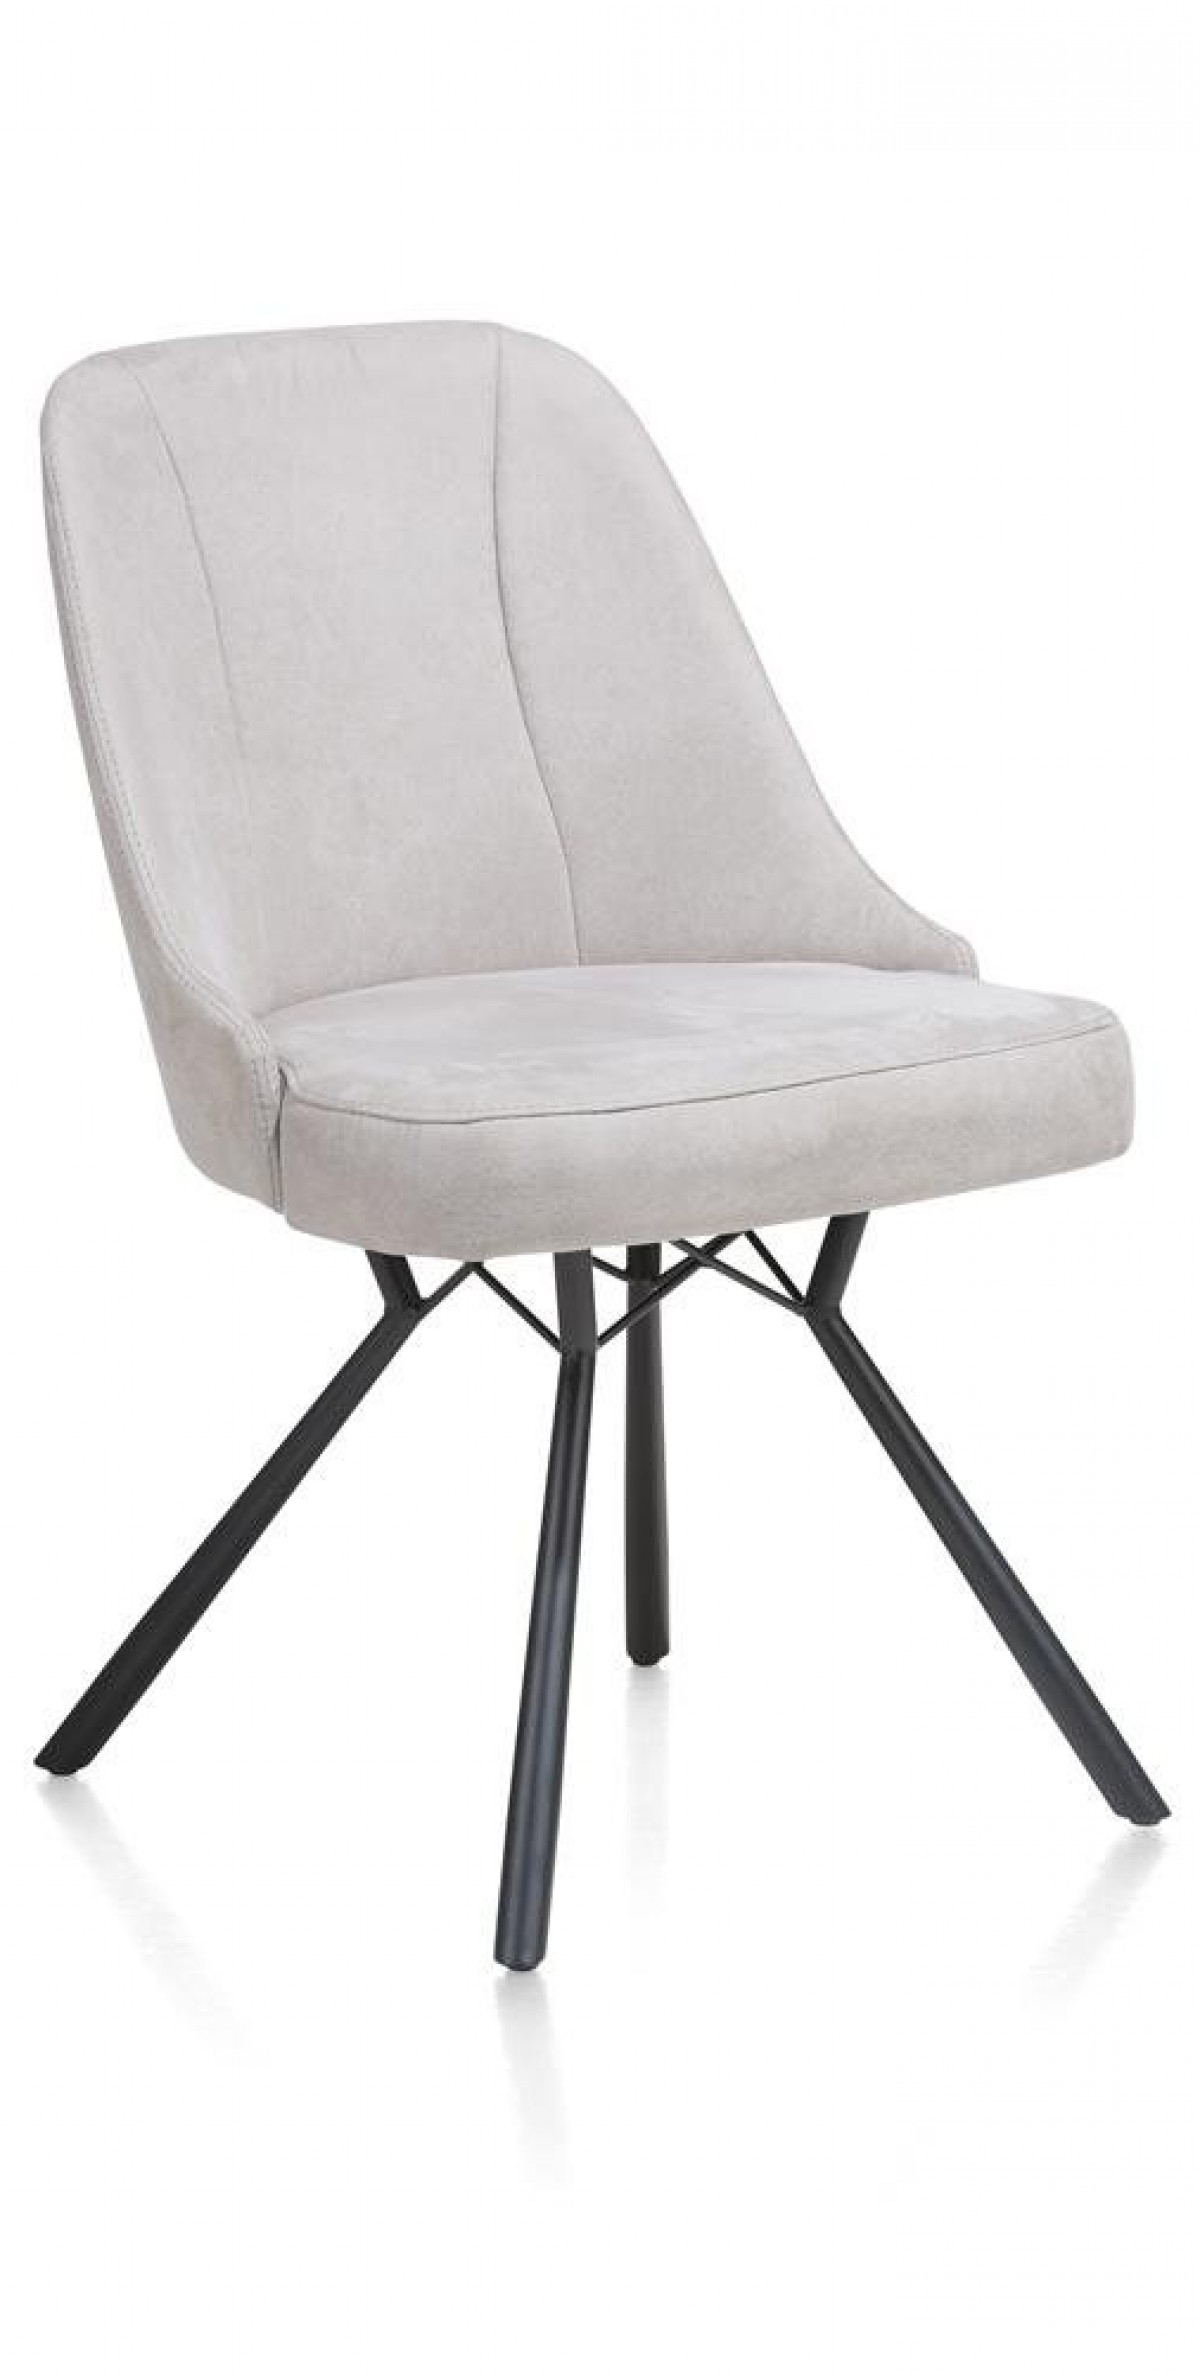 Jackson Dining Chair - Light Grey